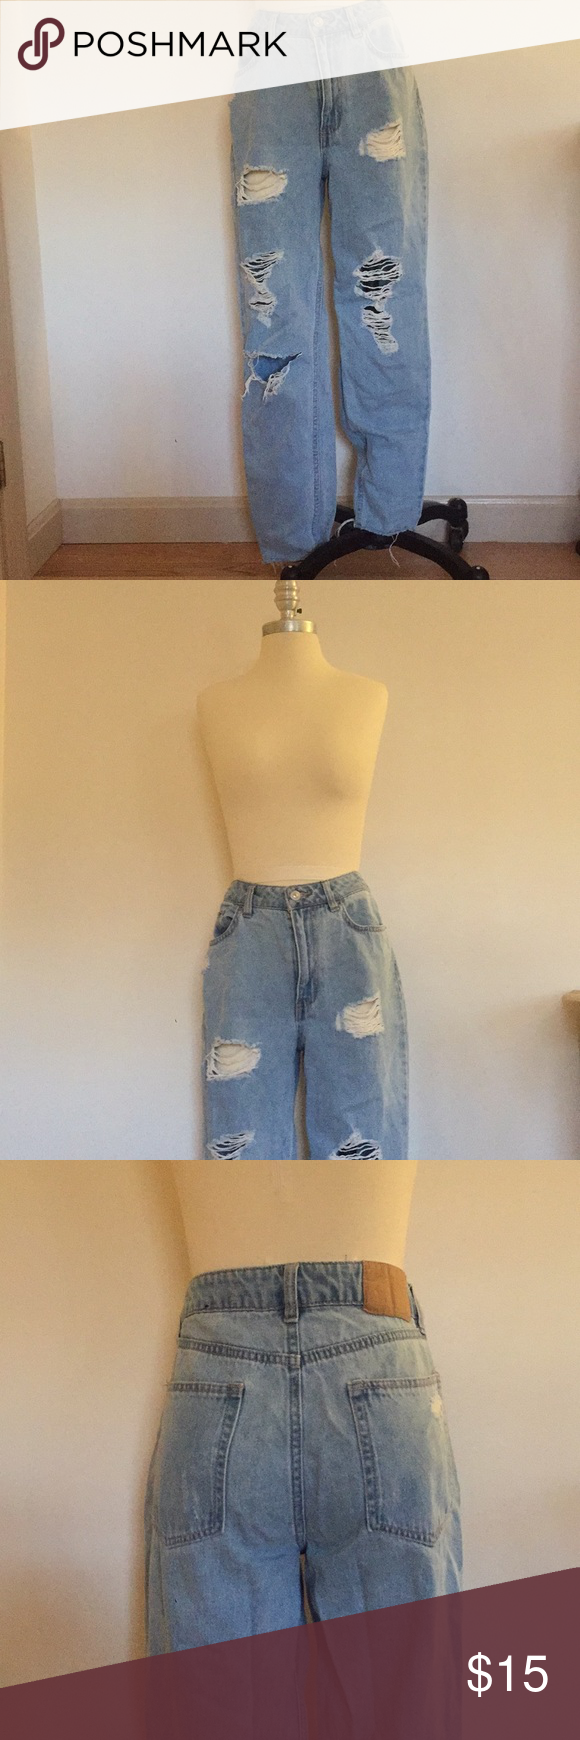 b68d8626d5c H&M Coachella Collection Light Wash Ripped Jeans Light washed boyfriend fit jeans  from H&M Coachella Collection. Ripped details on back pockets and holes ...